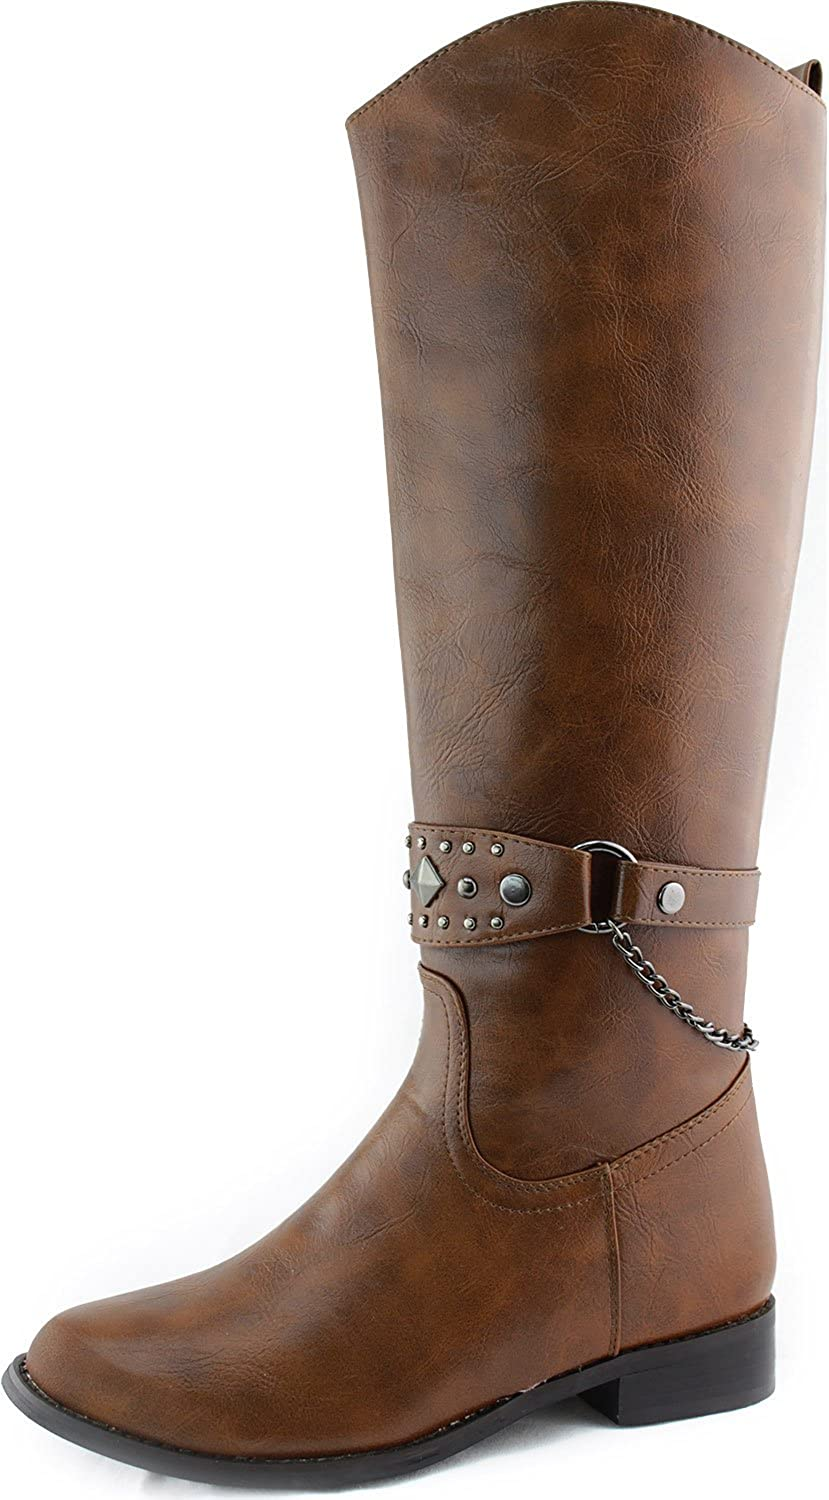 Women's Thigh High Rider Over Knee High Buckle Chain Strap Cowboy Riding Boots Fashion Shoes